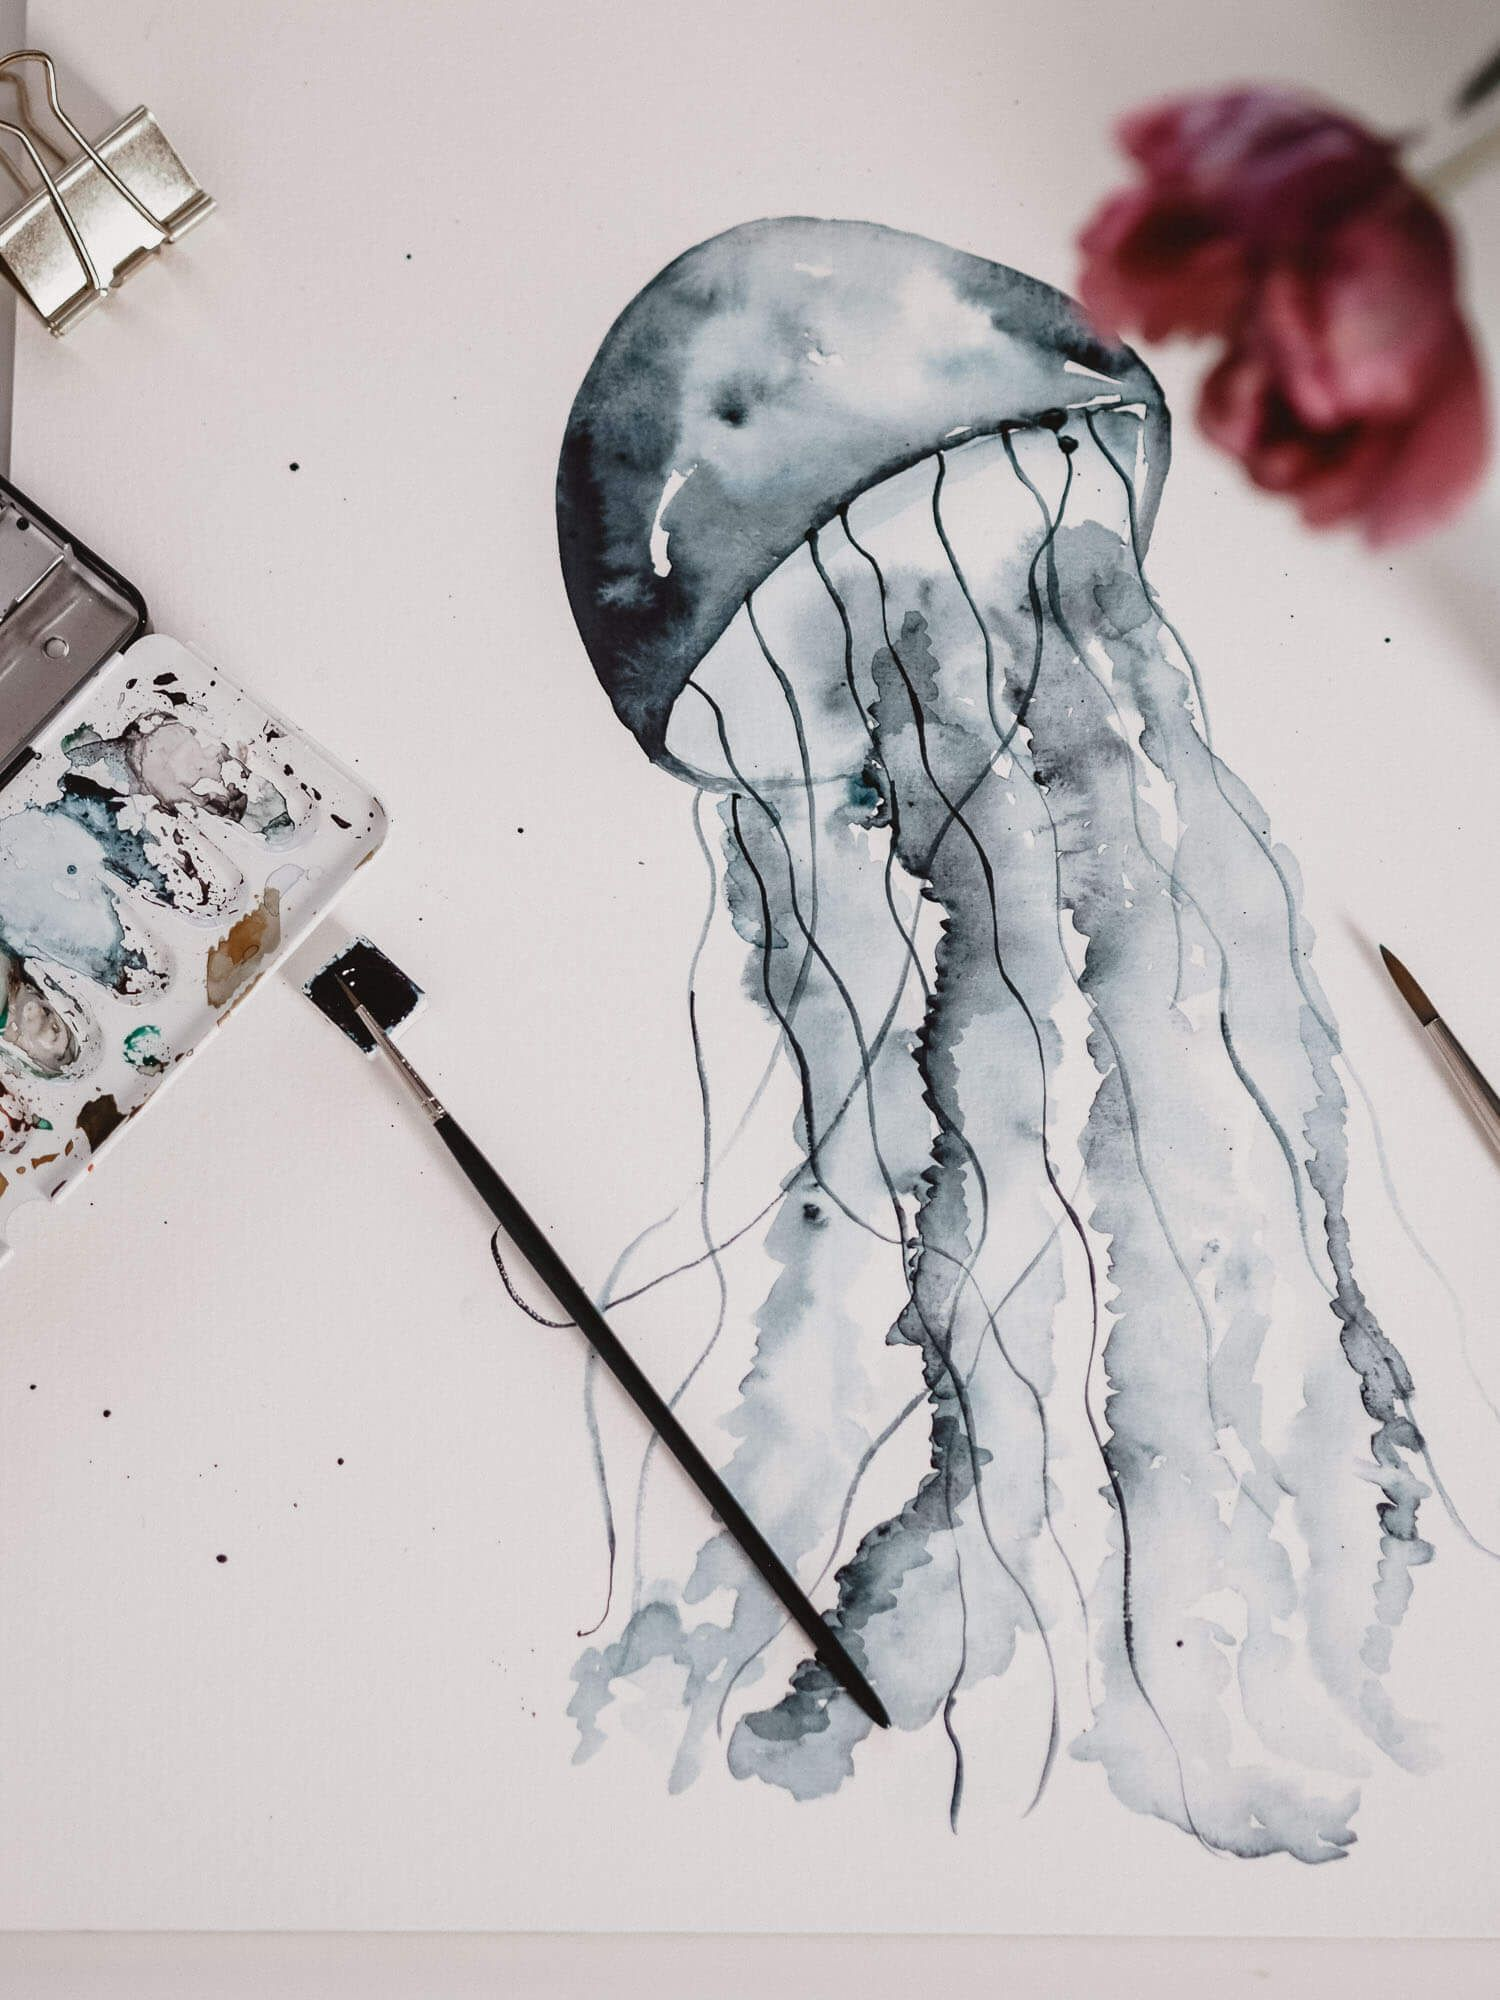 Tutorial: Aquarell Qualle / Watercolor Jellyfish, Step by Step Anleitung zum Malen #watercolorarts